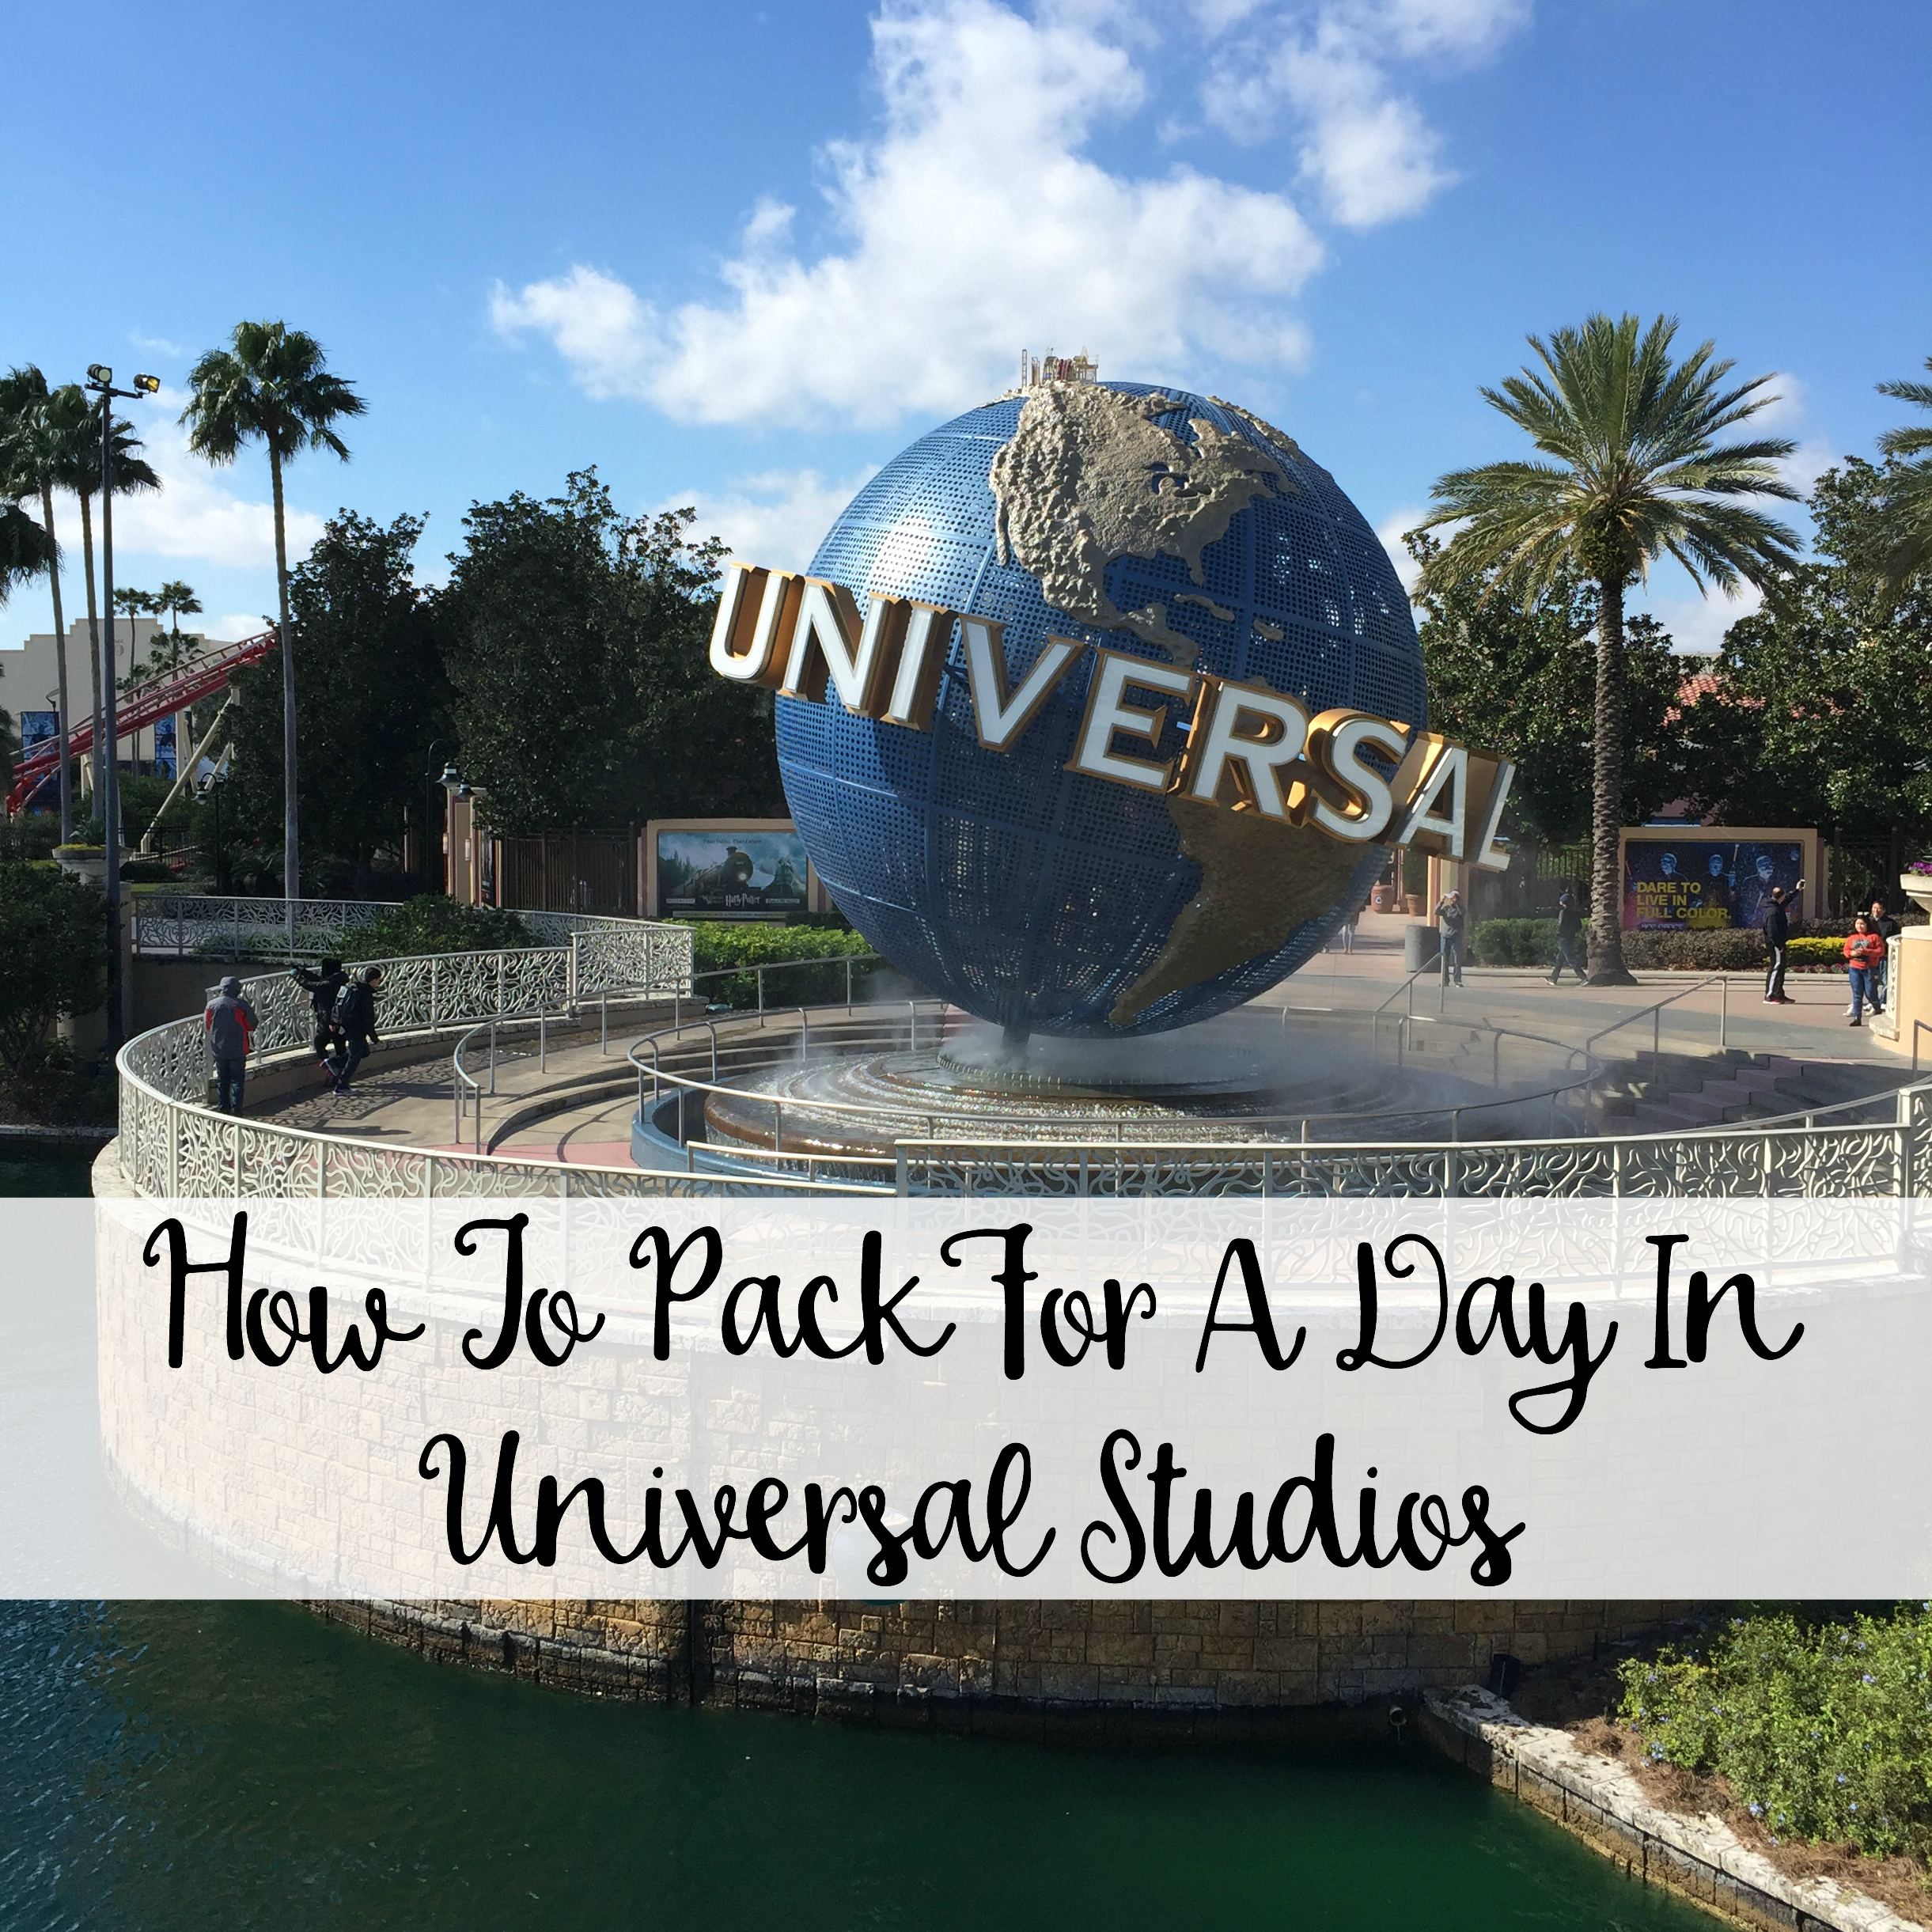 12f932c1cc7 ... your bags on most of the Disney World rides. The Wandering Weekenders-  What To Pack For A Day In Universal Studios